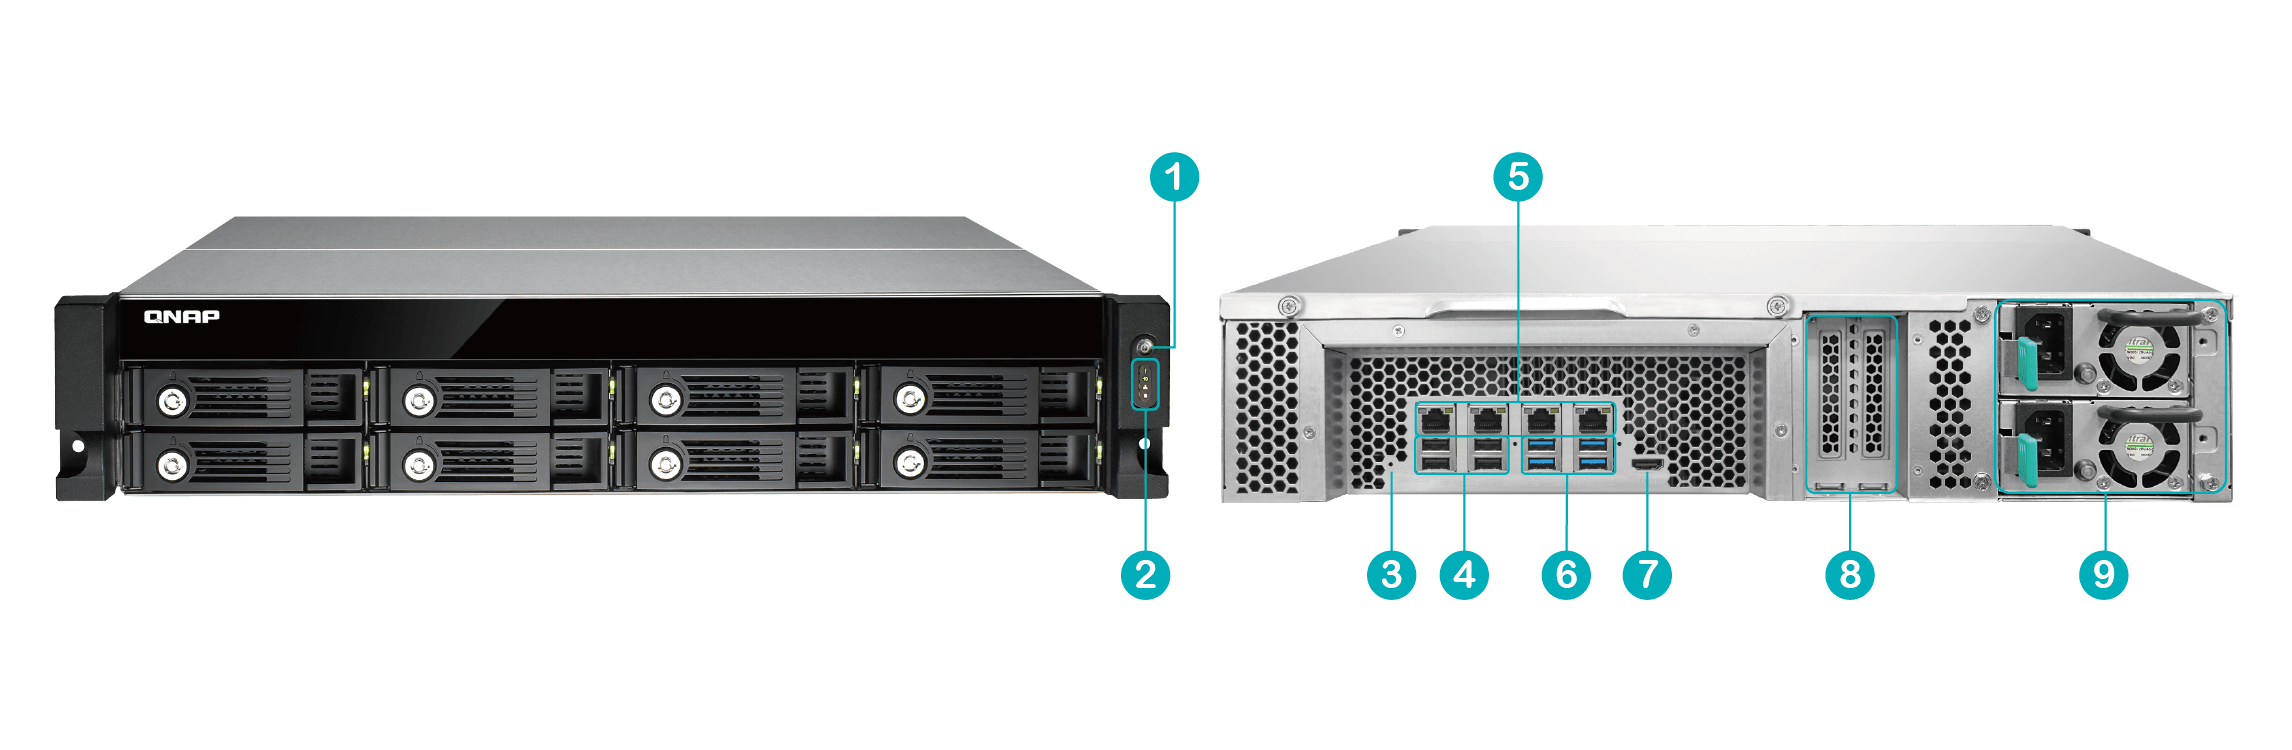 QNAP Hardware Specification